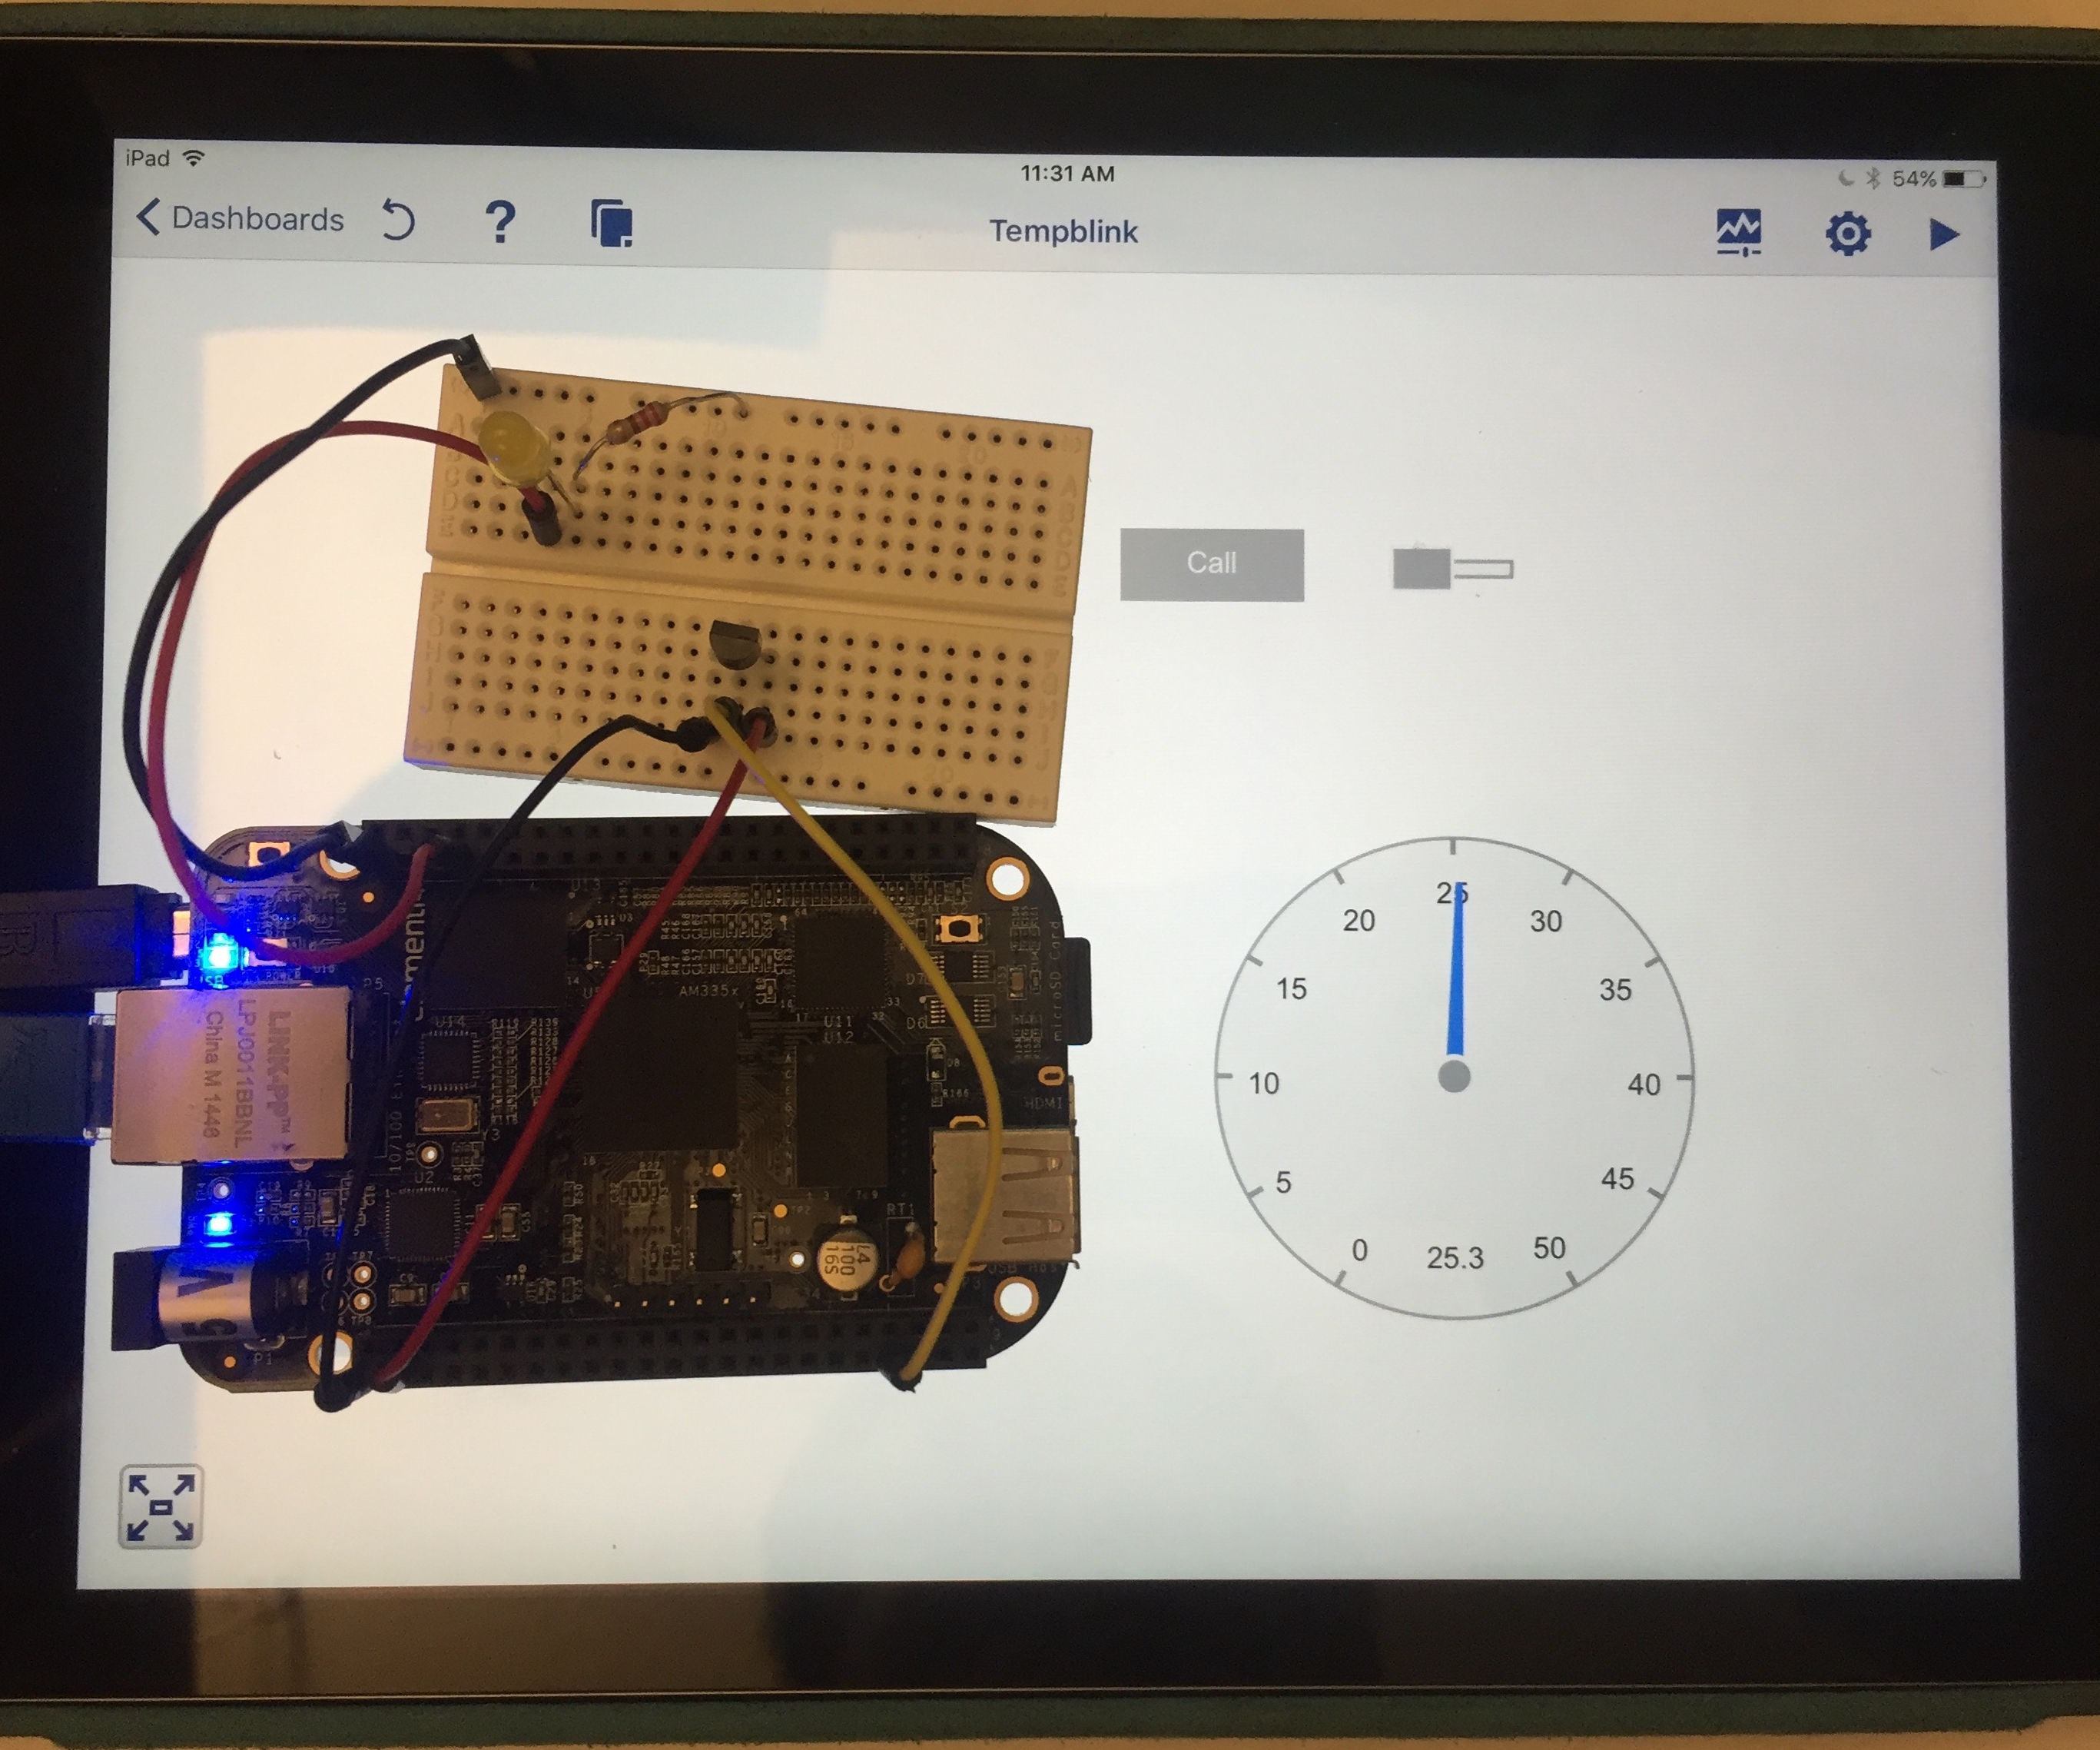 Using a tablet to control a BeagleBone Black with LabVIEW